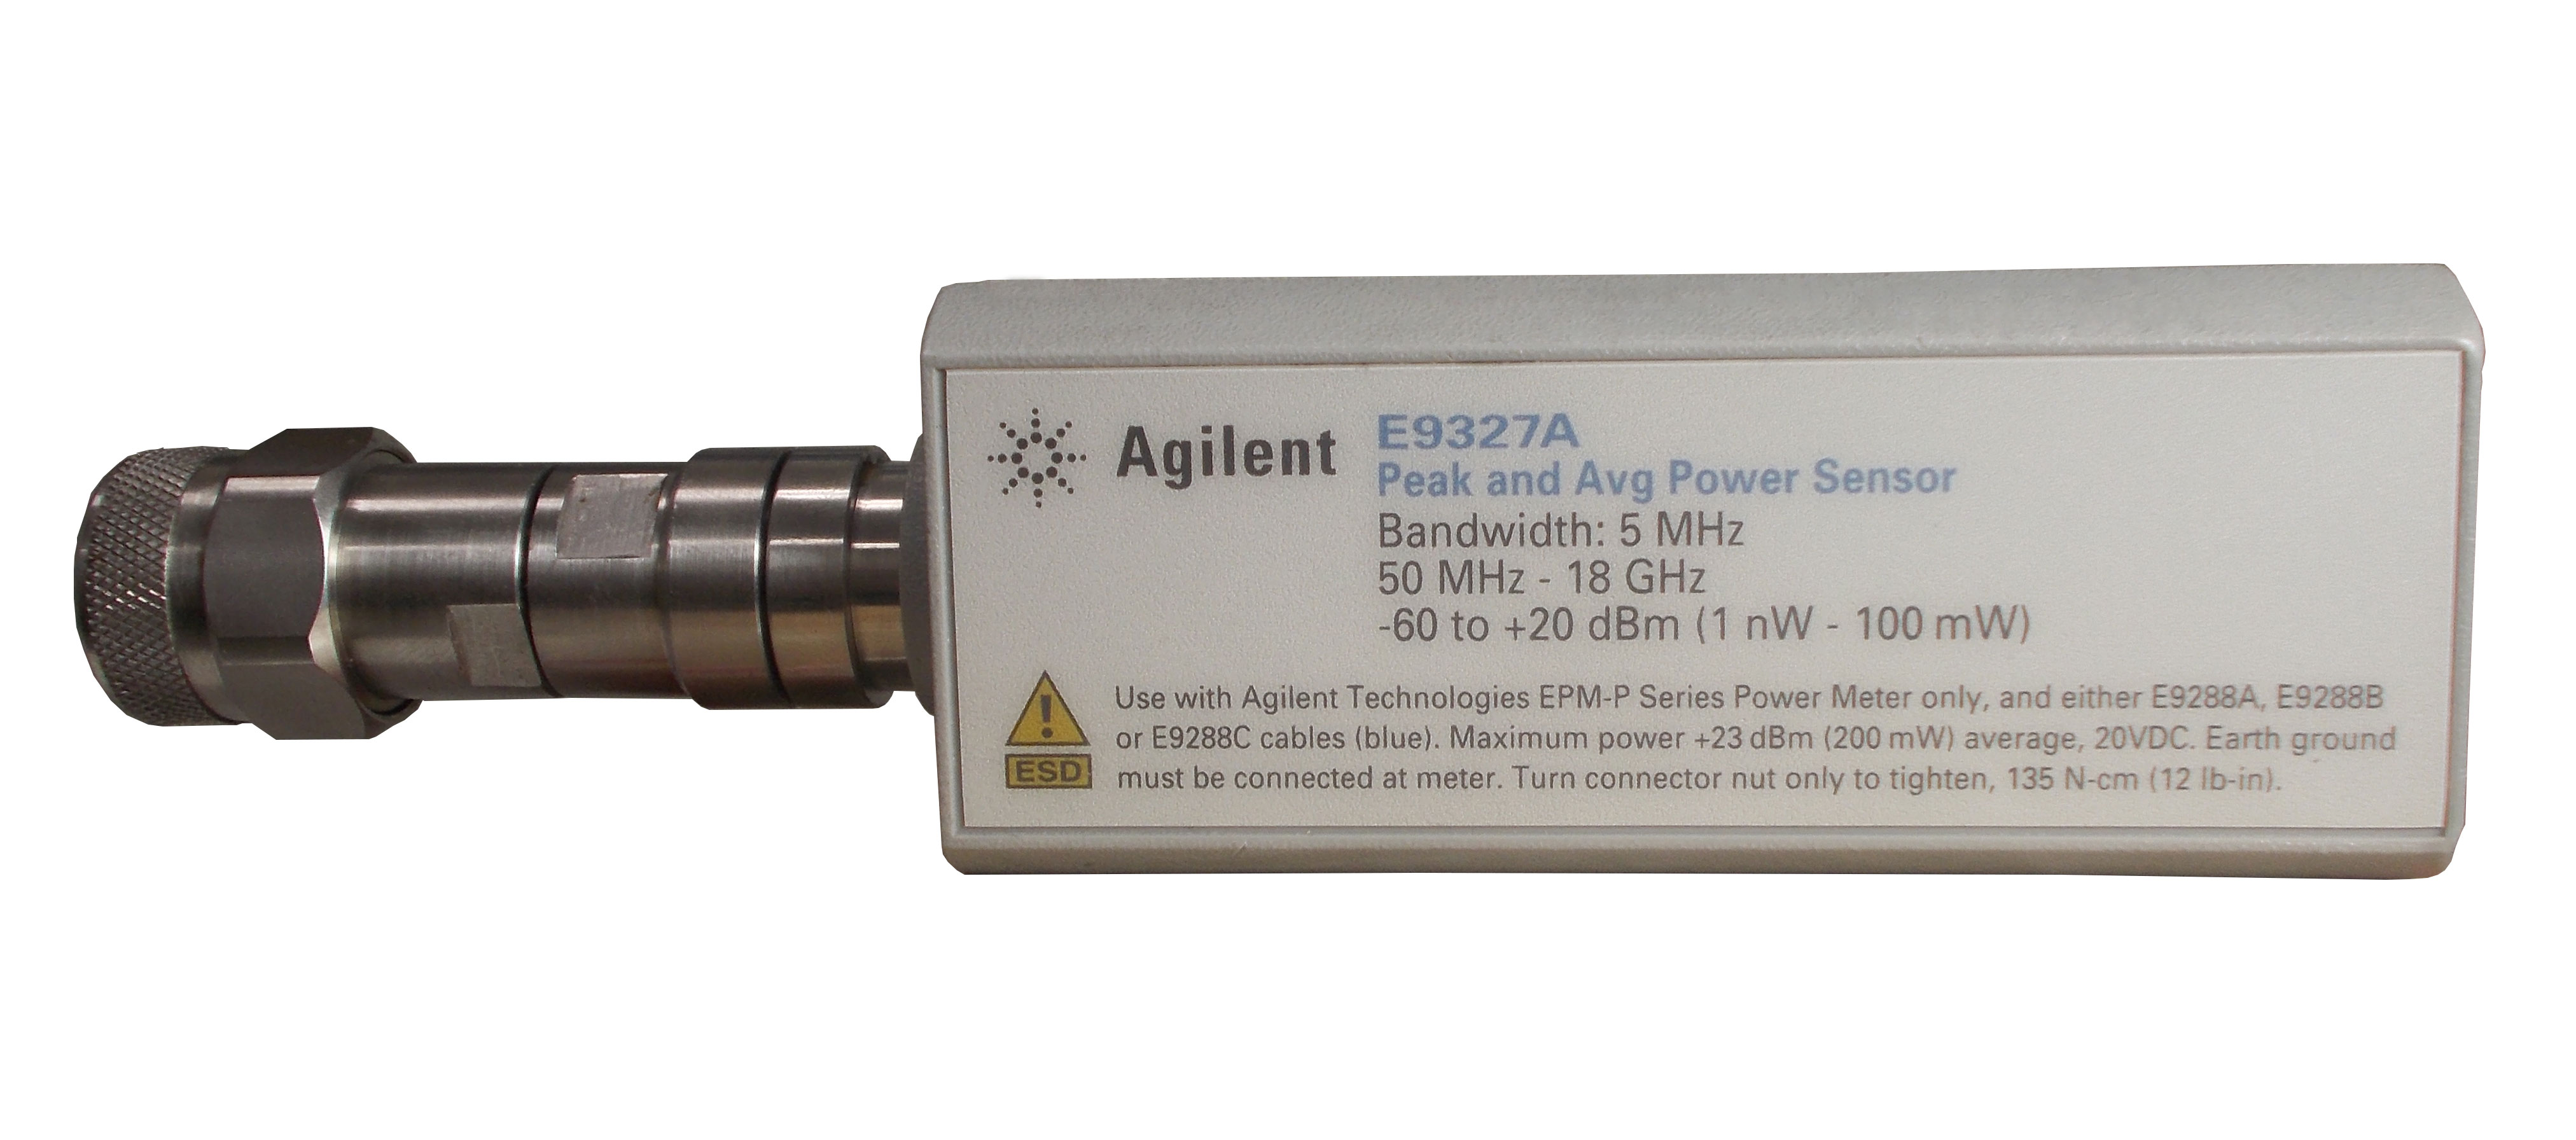 Keysight E9327A Peak and Average Power Sensor